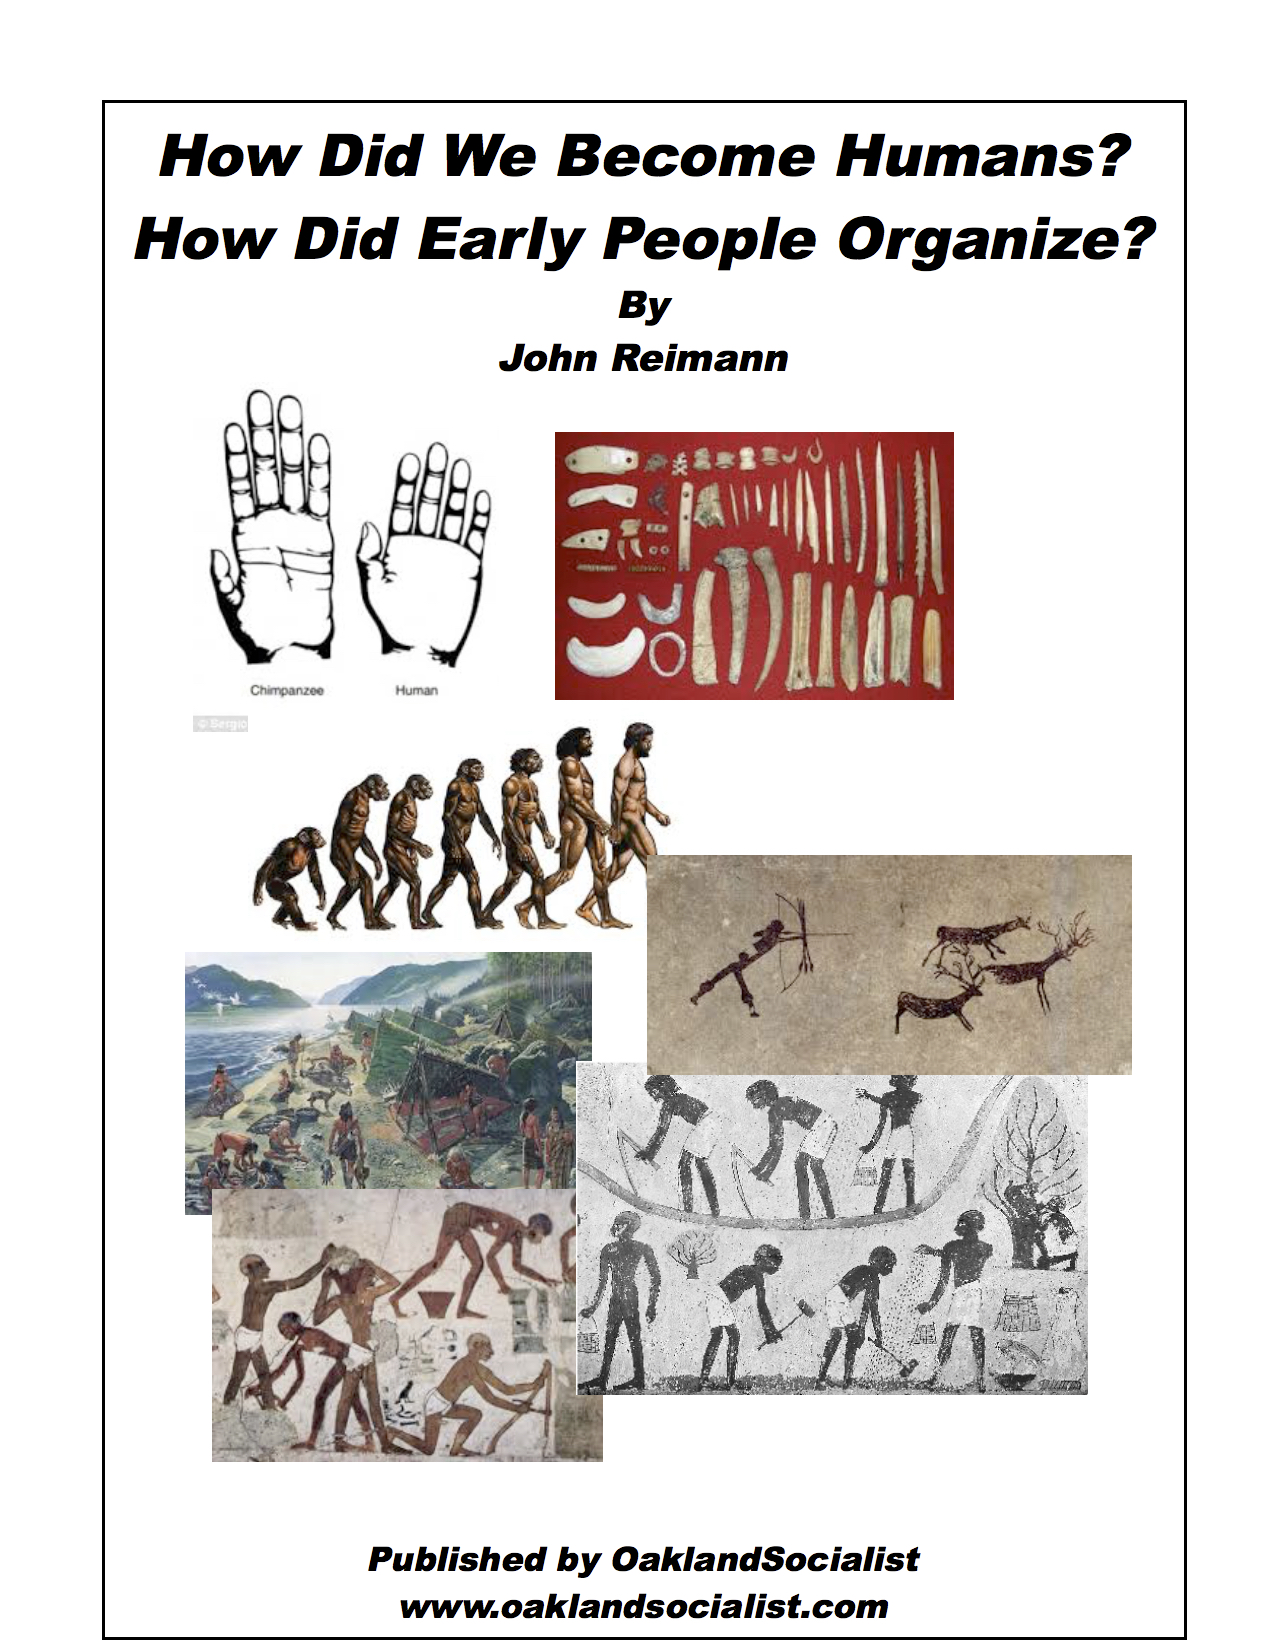 early humans and their transition from hunting to agriculture For hundreds, even thousands of years, early farmers continued to forage for fruit and berries and hunt wild game, and it was only gradually that their economy shifted more towards agriculture it would only have been when the farming population grew to an extent which restricted hunting and foraging that they became less important.